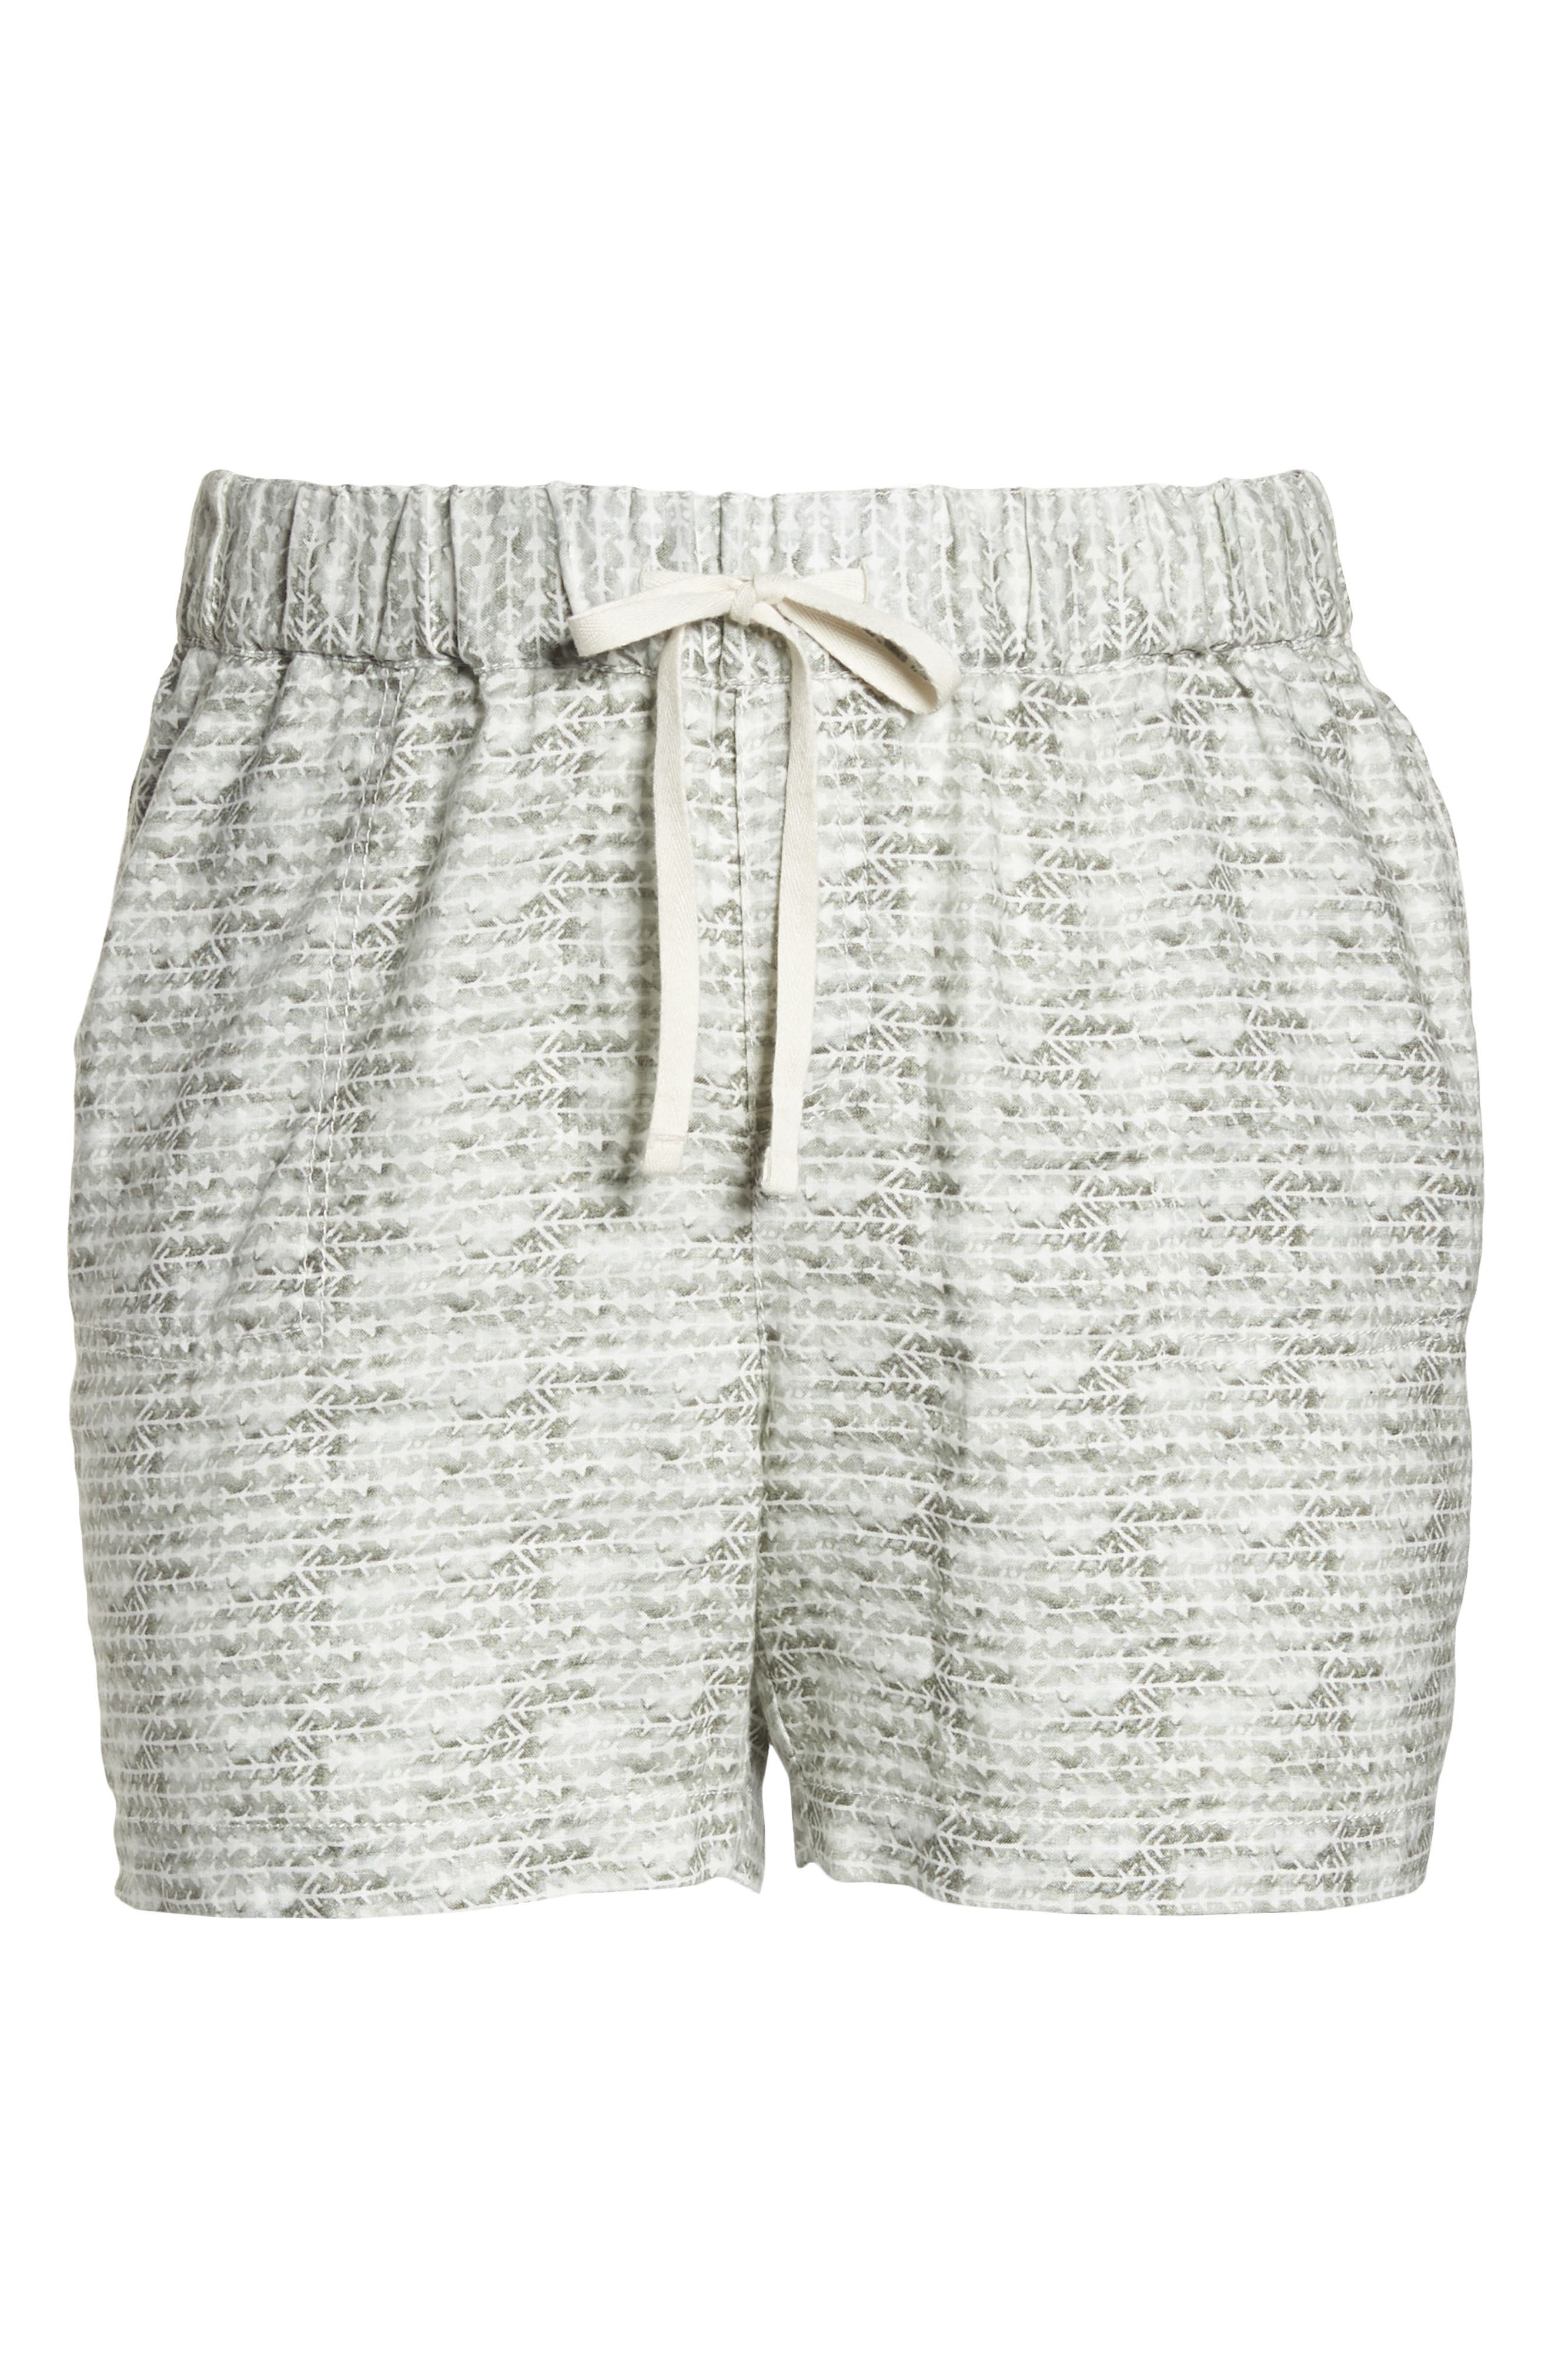 Linen Shorts,                             Alternate thumbnail 7, color,                             IVORY- OLIVE DIAMOND DIRECTION